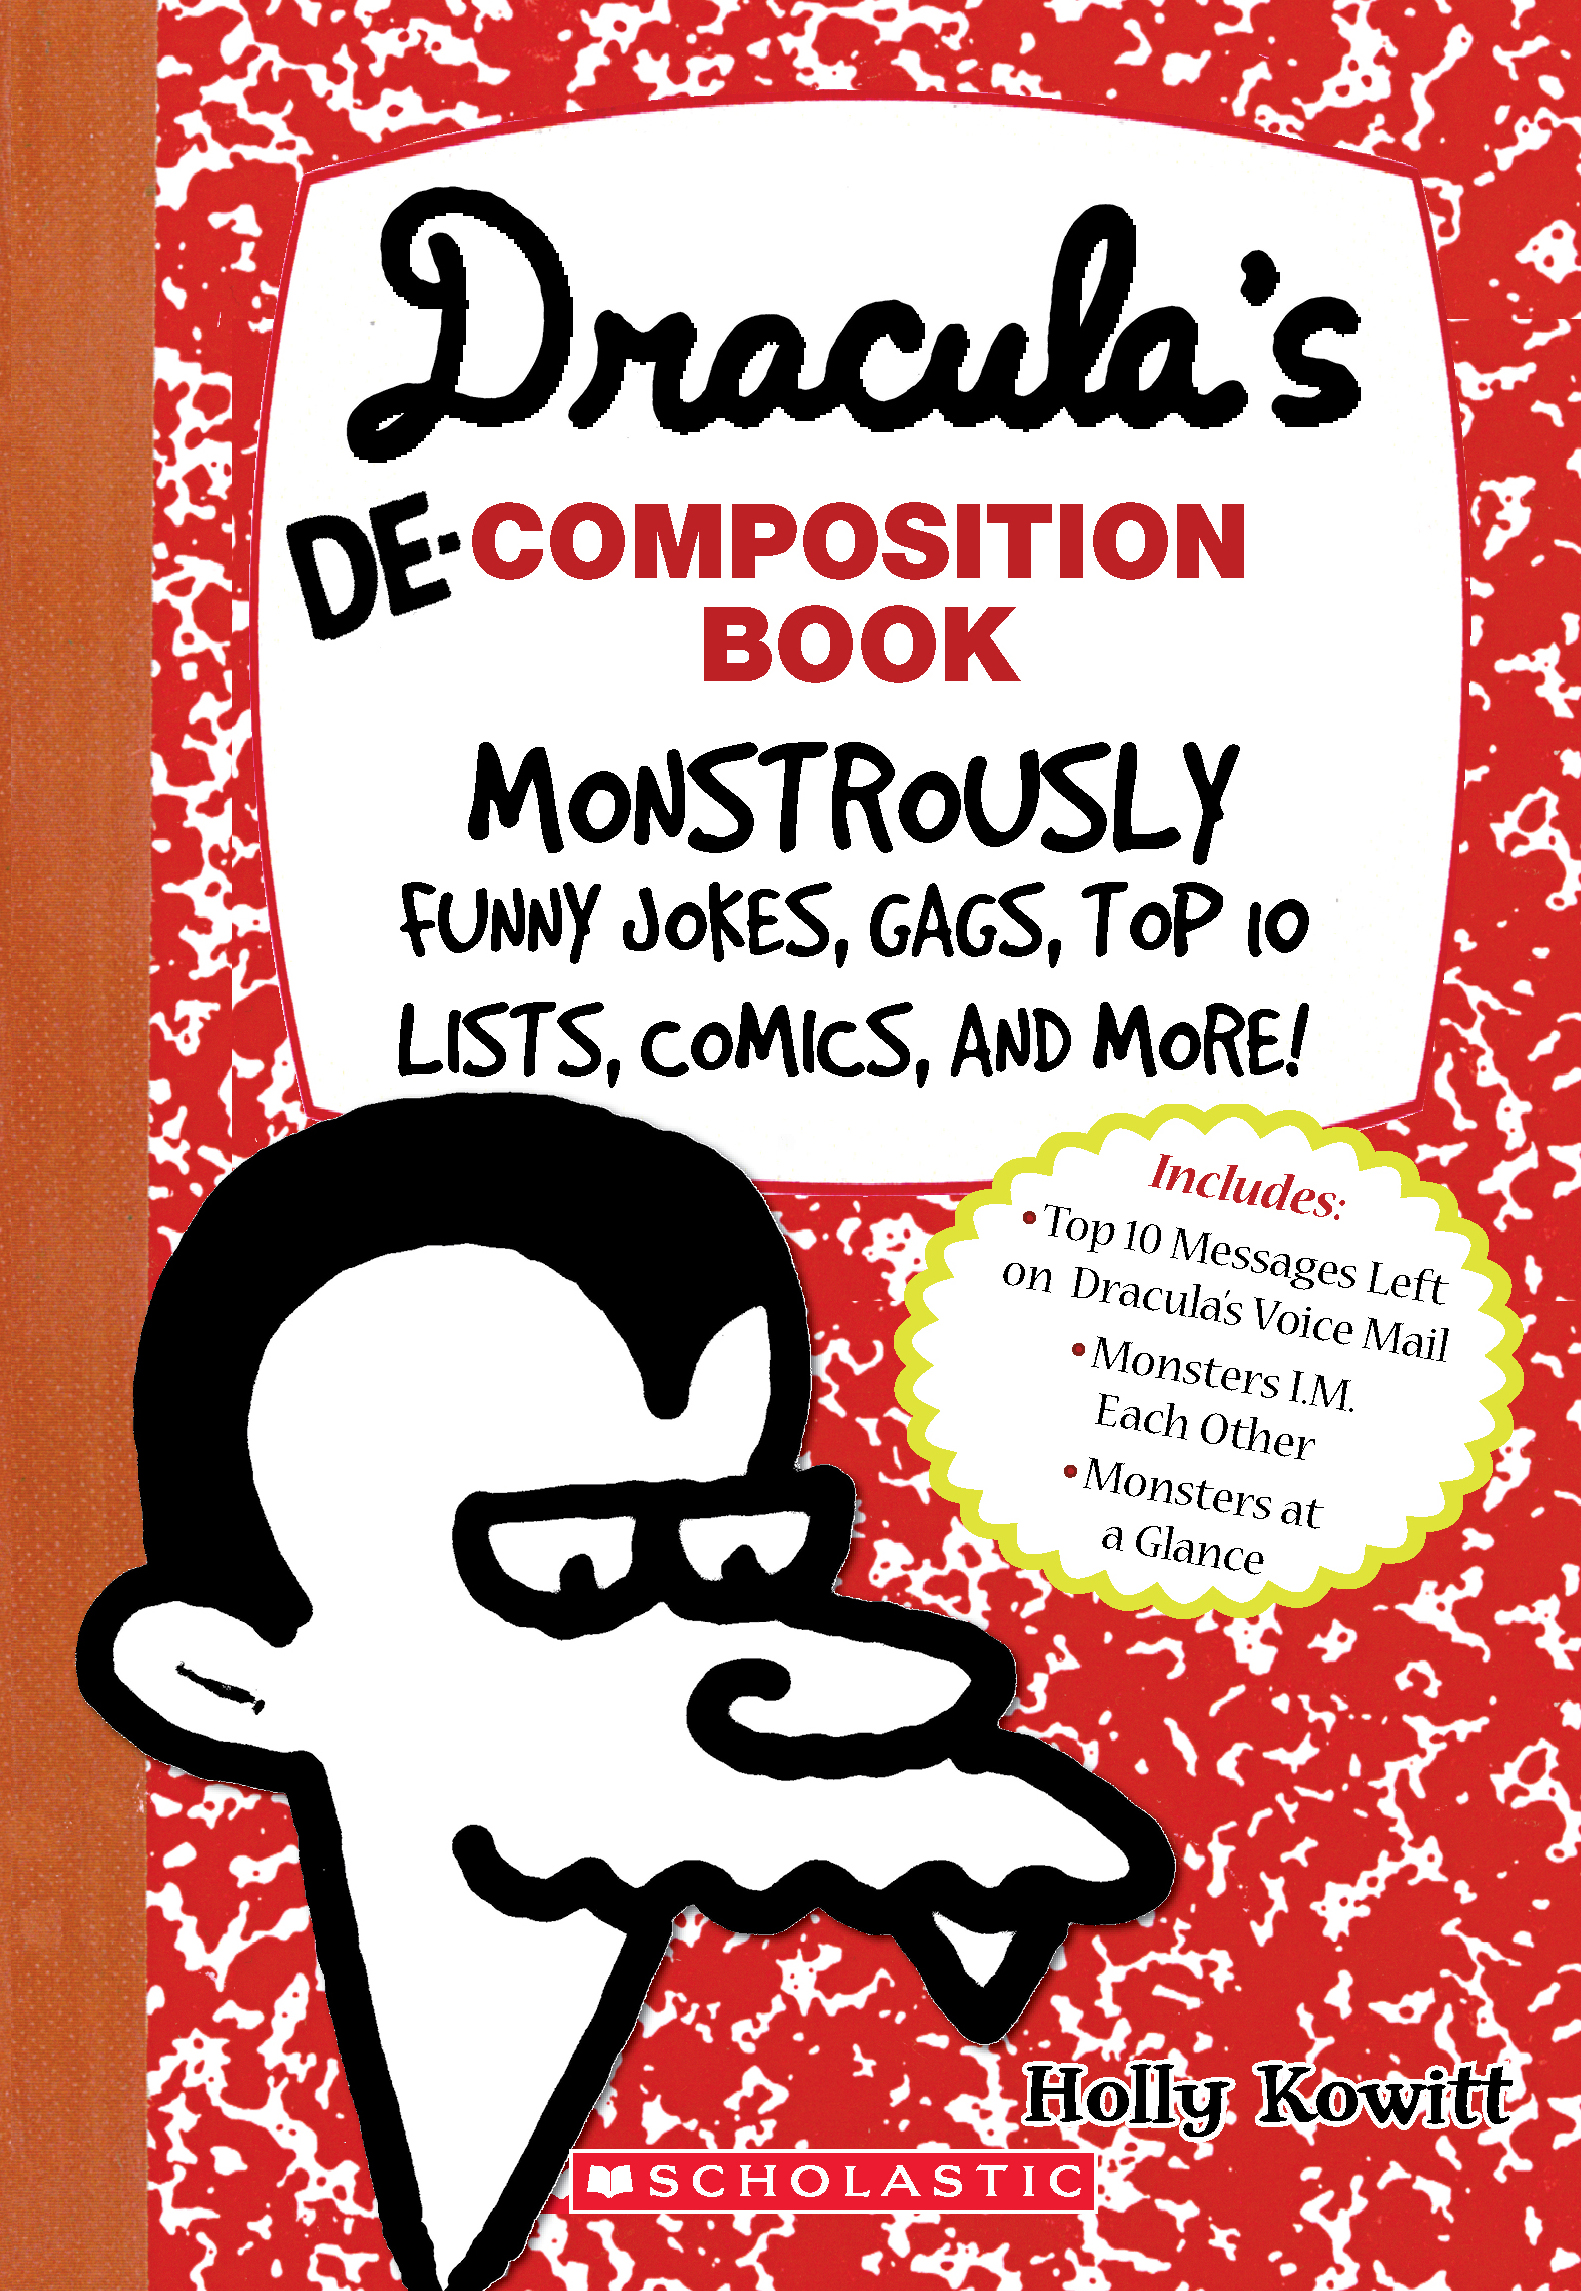 Dracula's De-composition Book